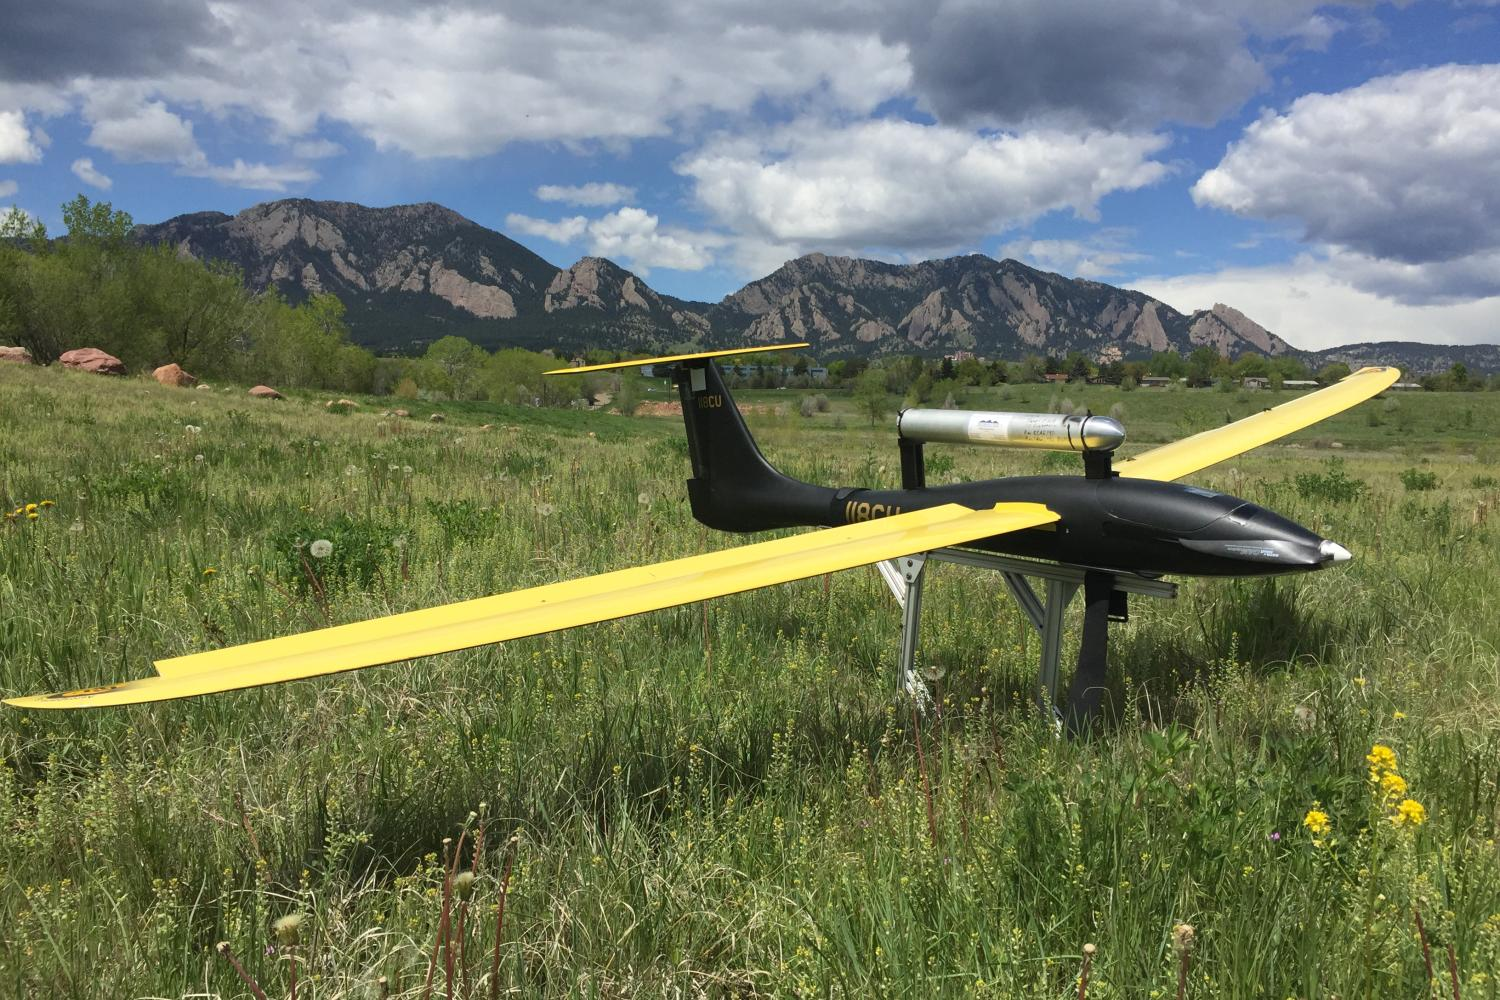 Unmanned aerial vehicle resting on the ground with the flatirons in the background.